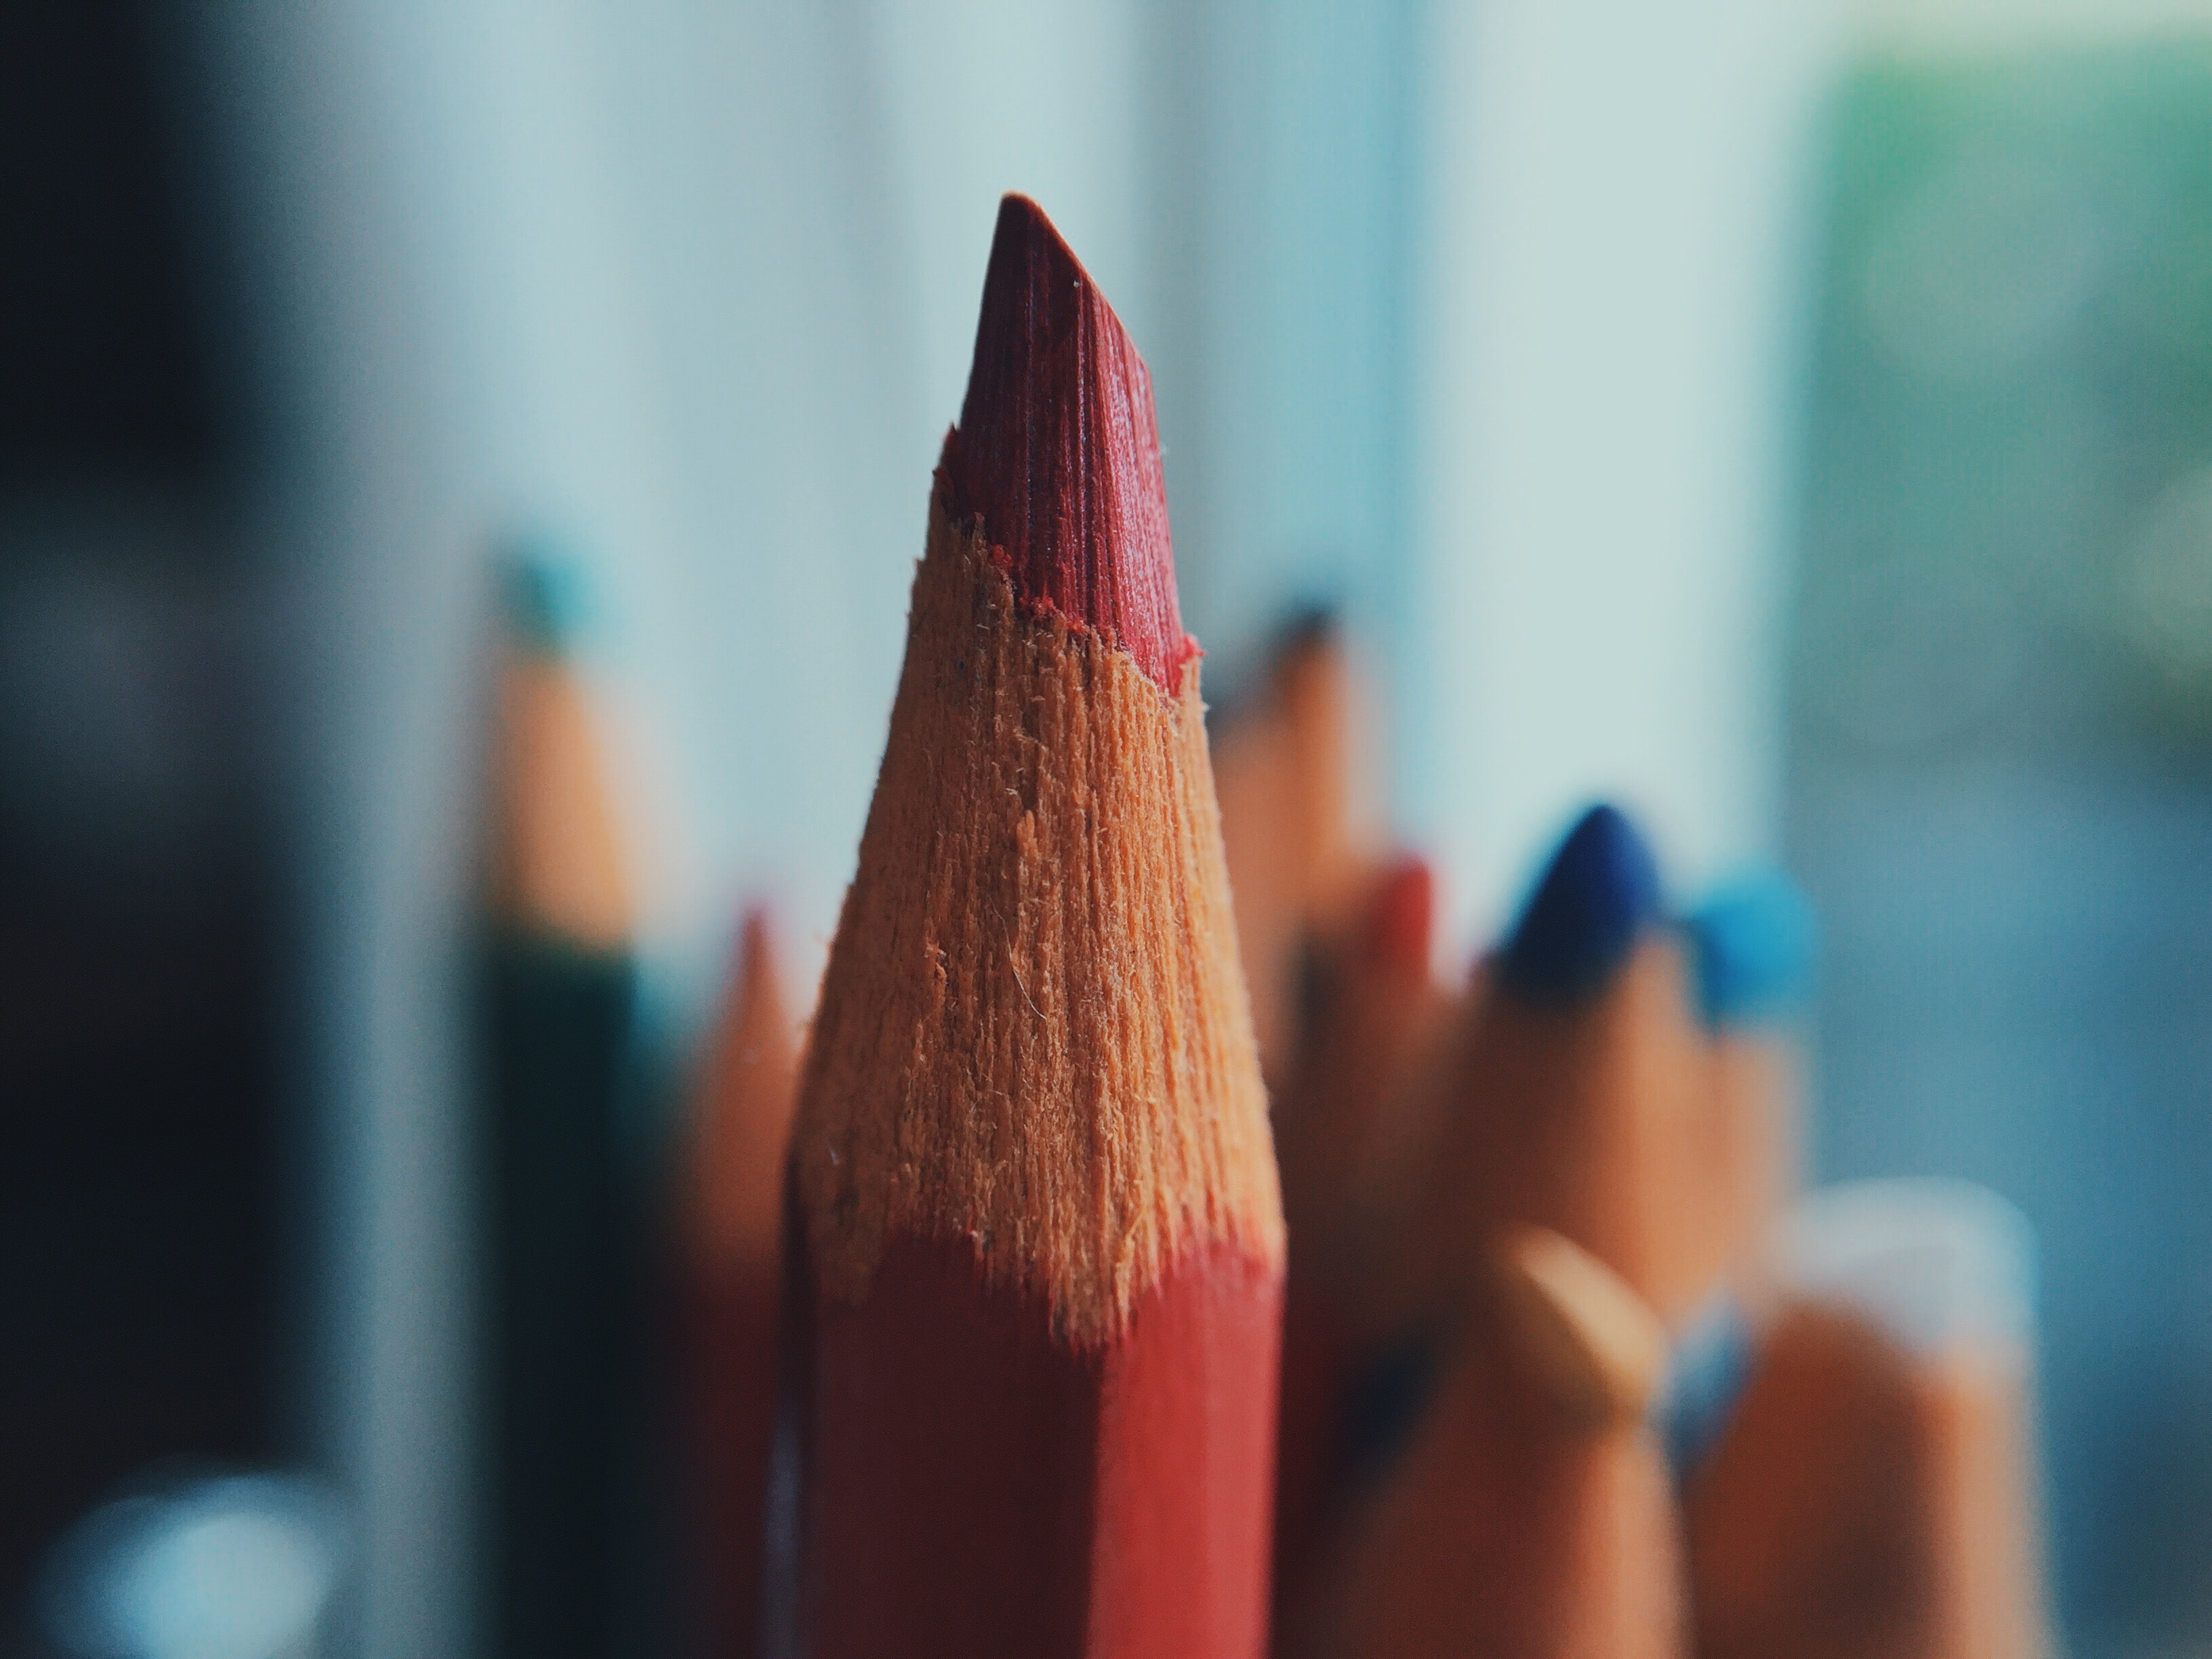 selective focus photography of red color pencil